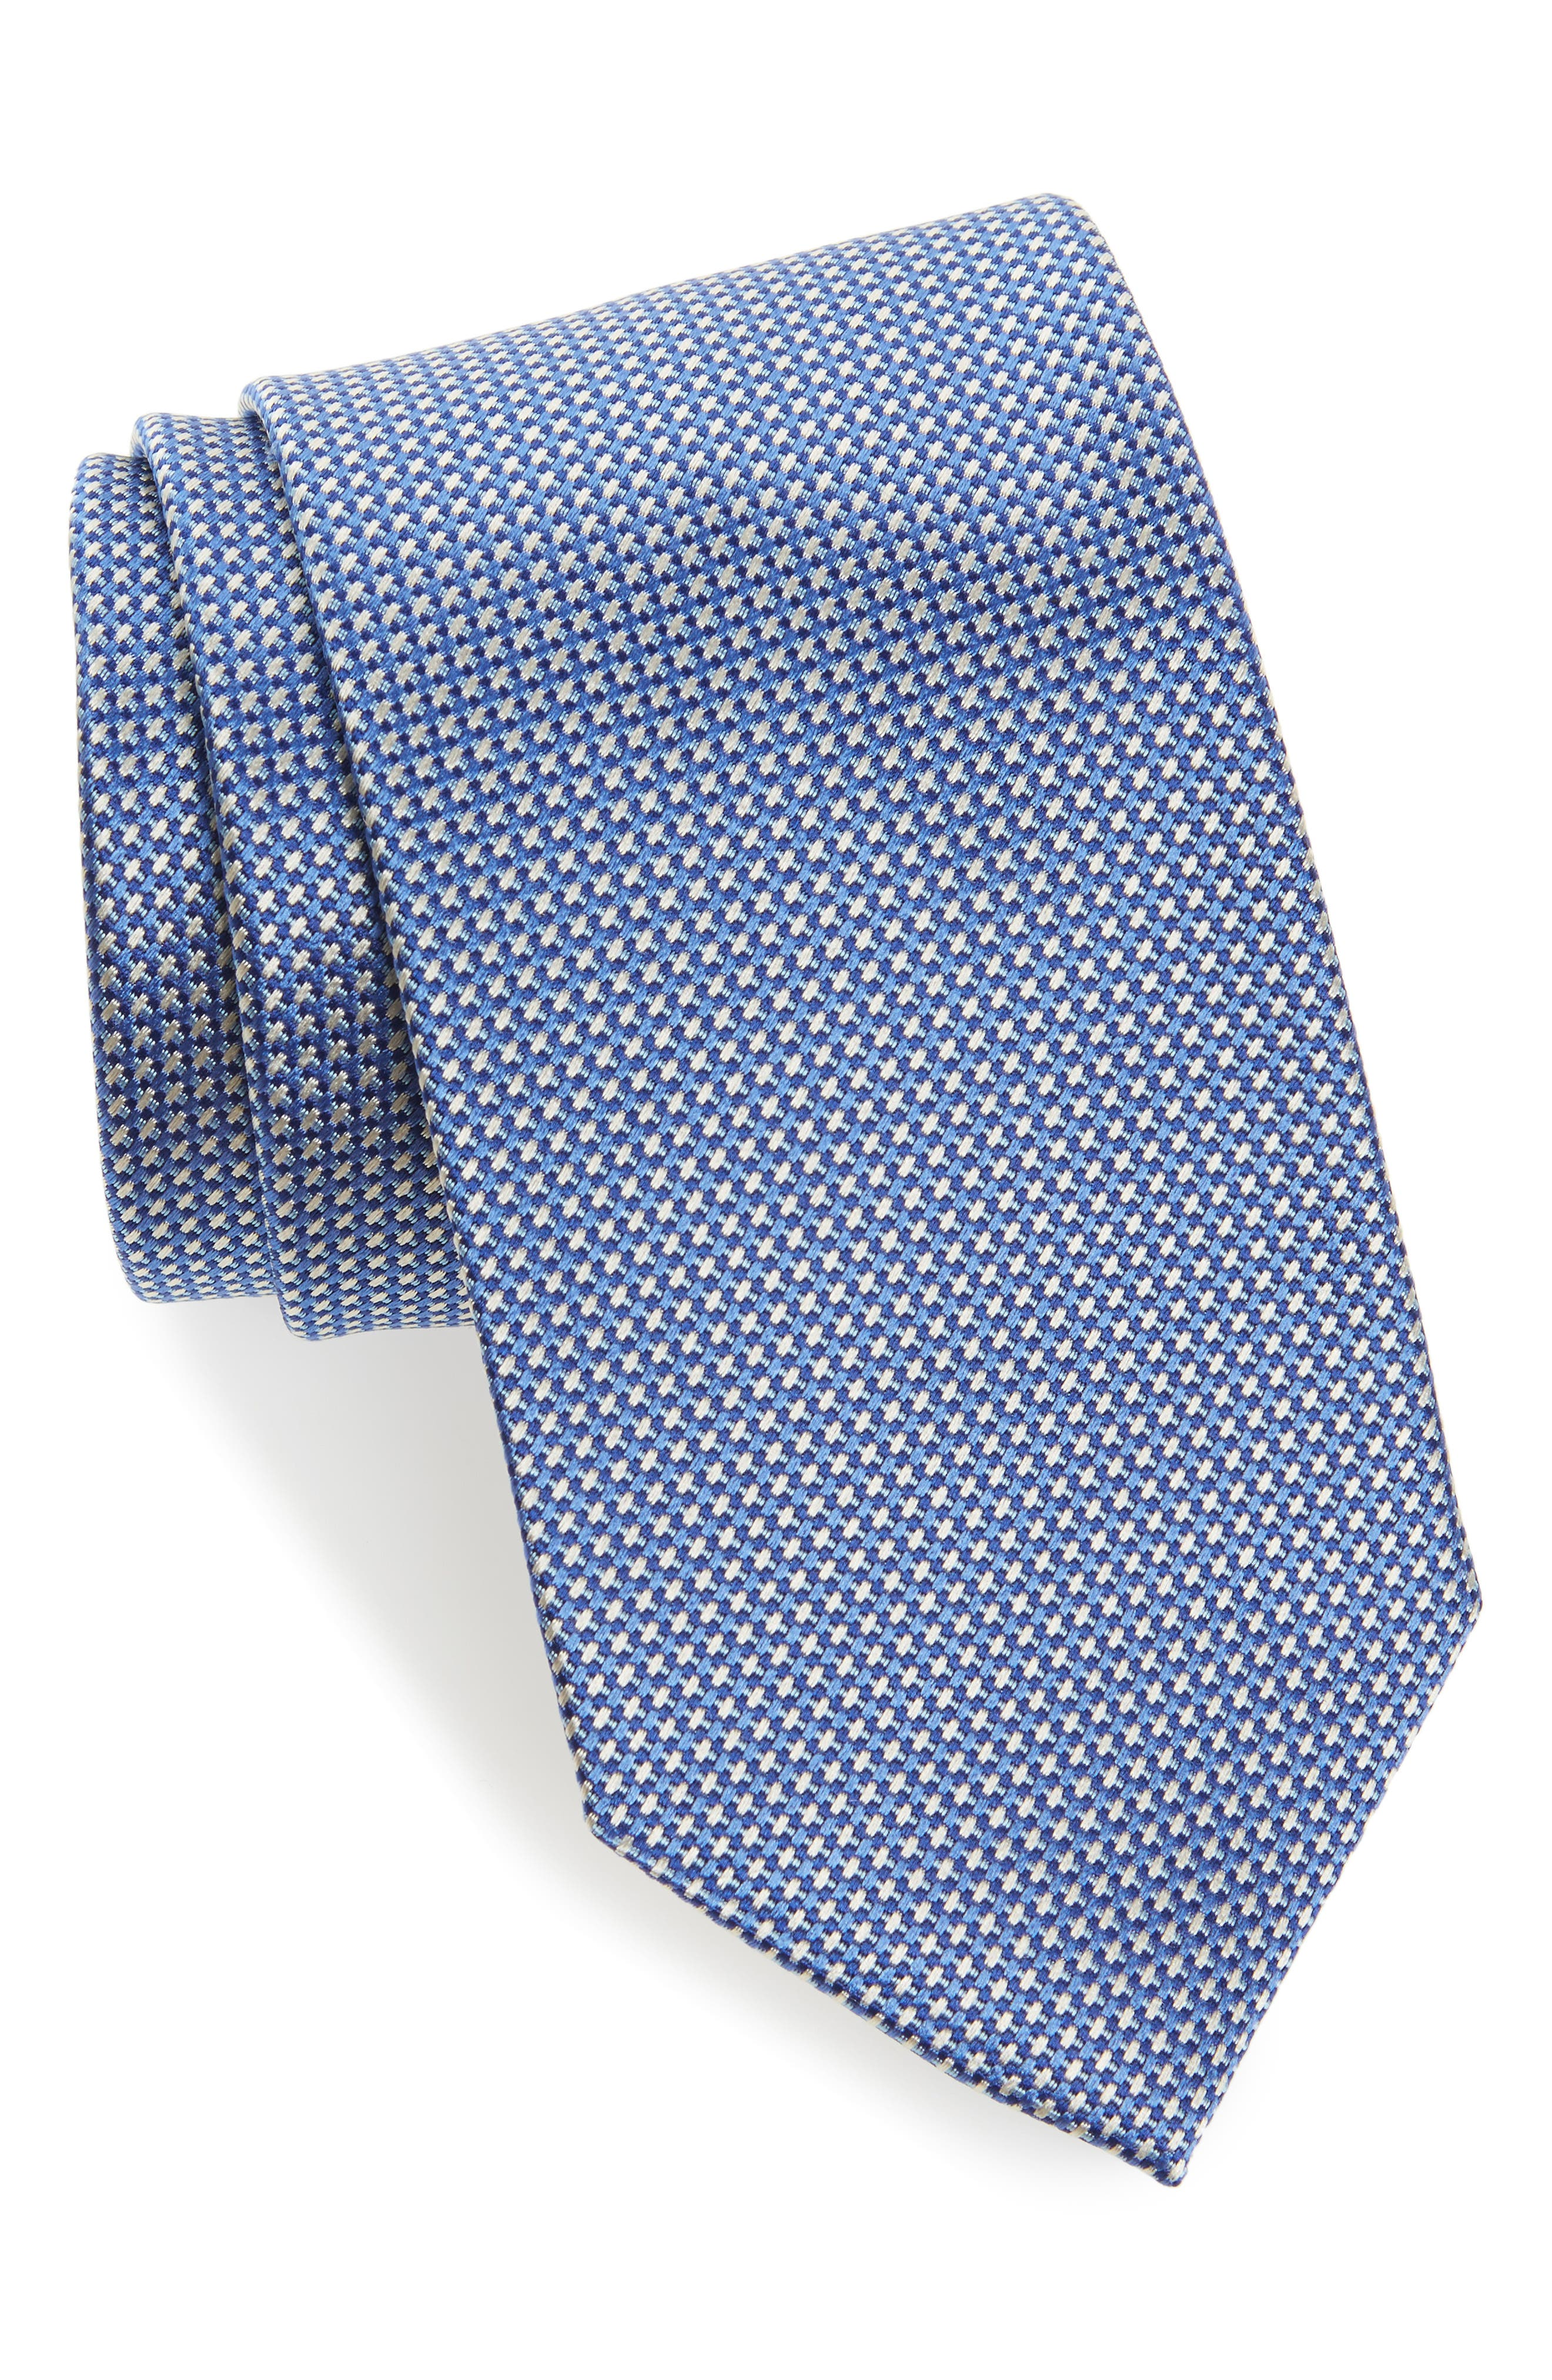 Geometric Silk Tie,                             Main thumbnail 1, color,                             423